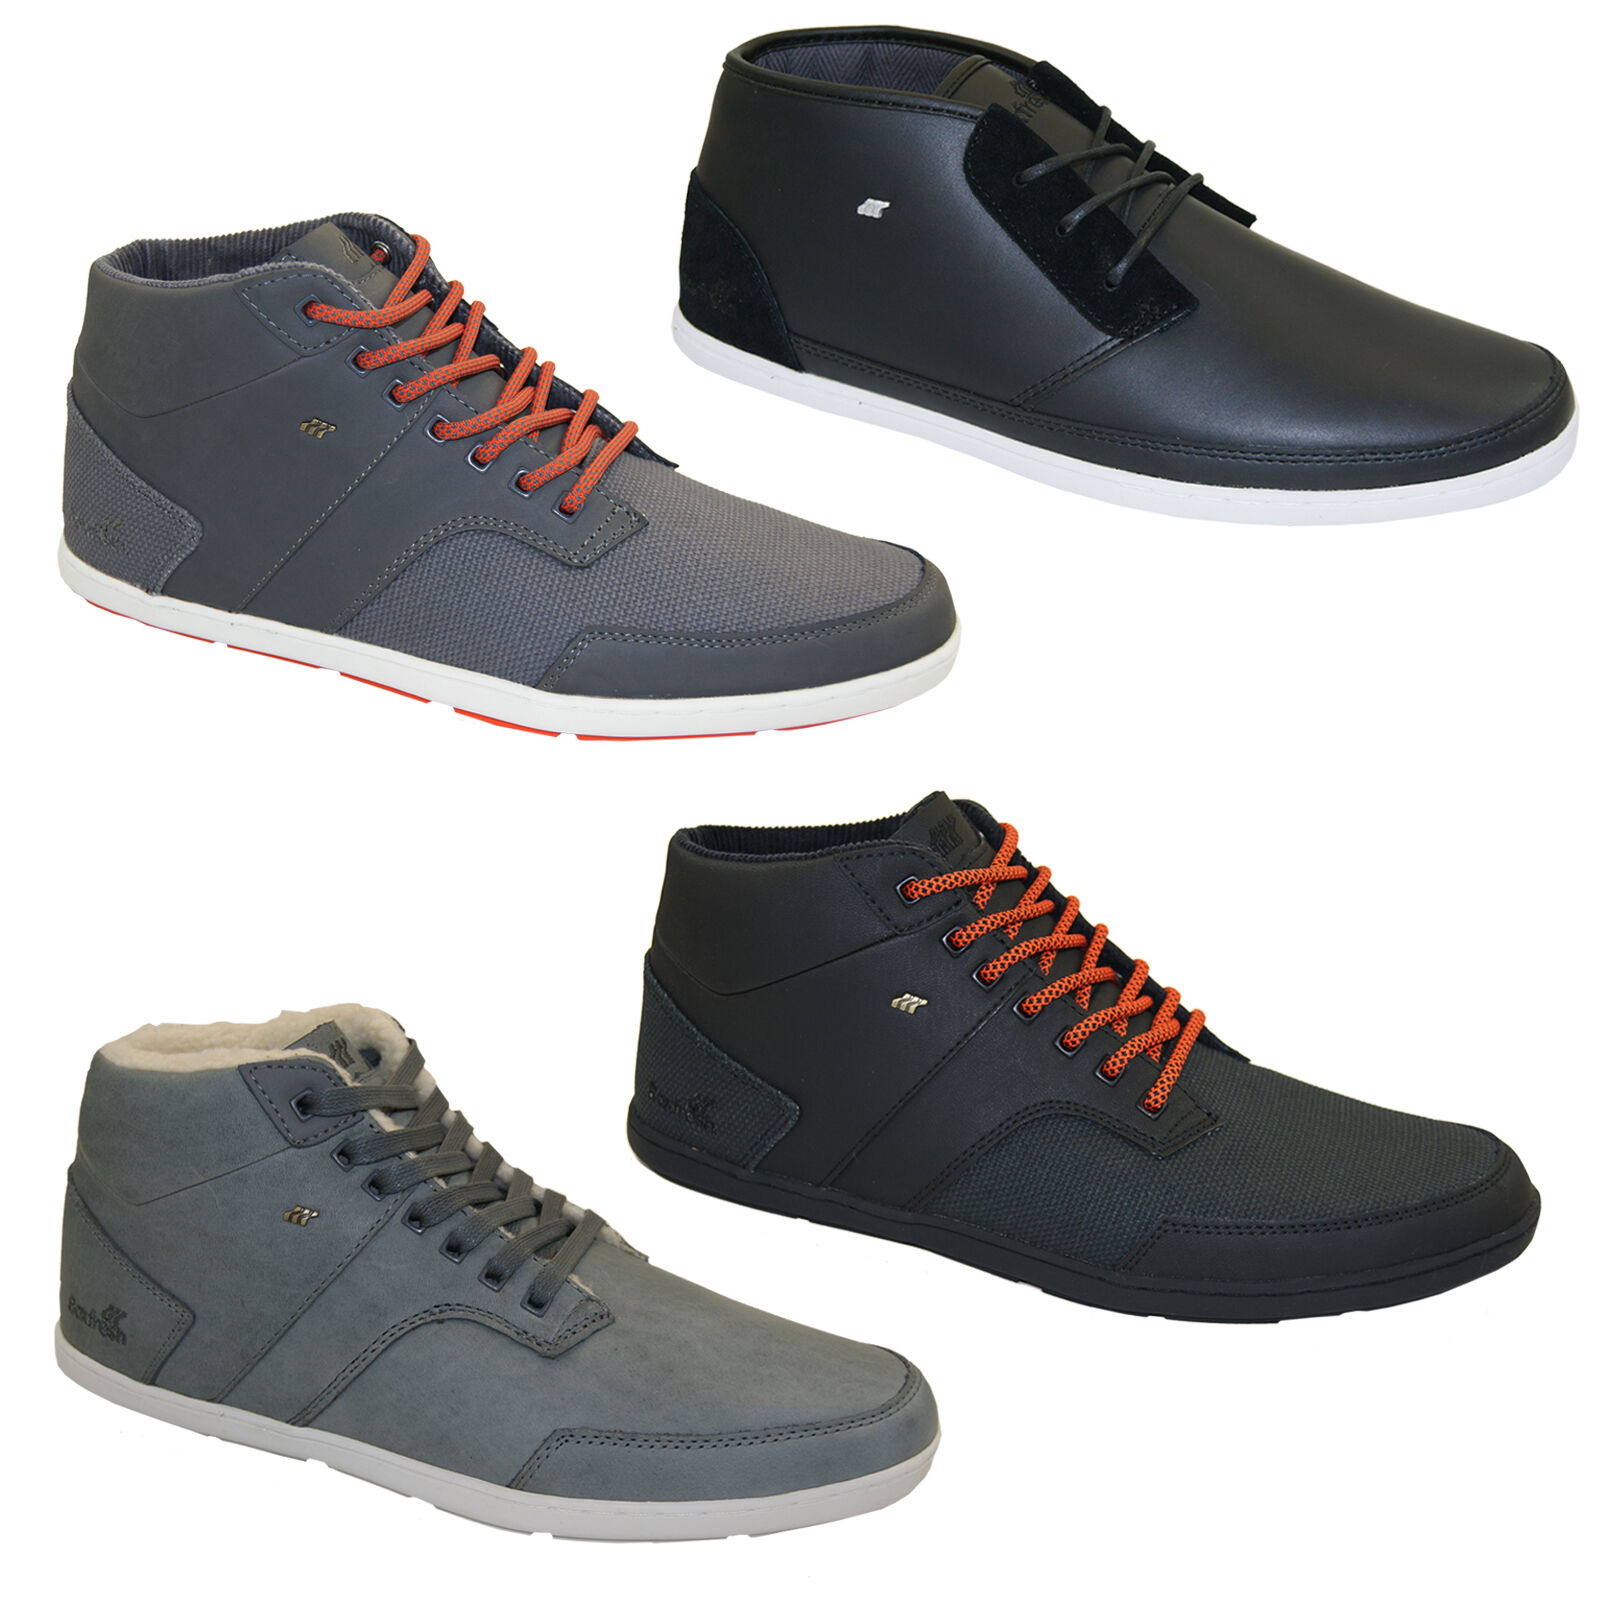 Boxfresh Shepperton Milford High Top  Stivali Uomo normalissime NUOVO